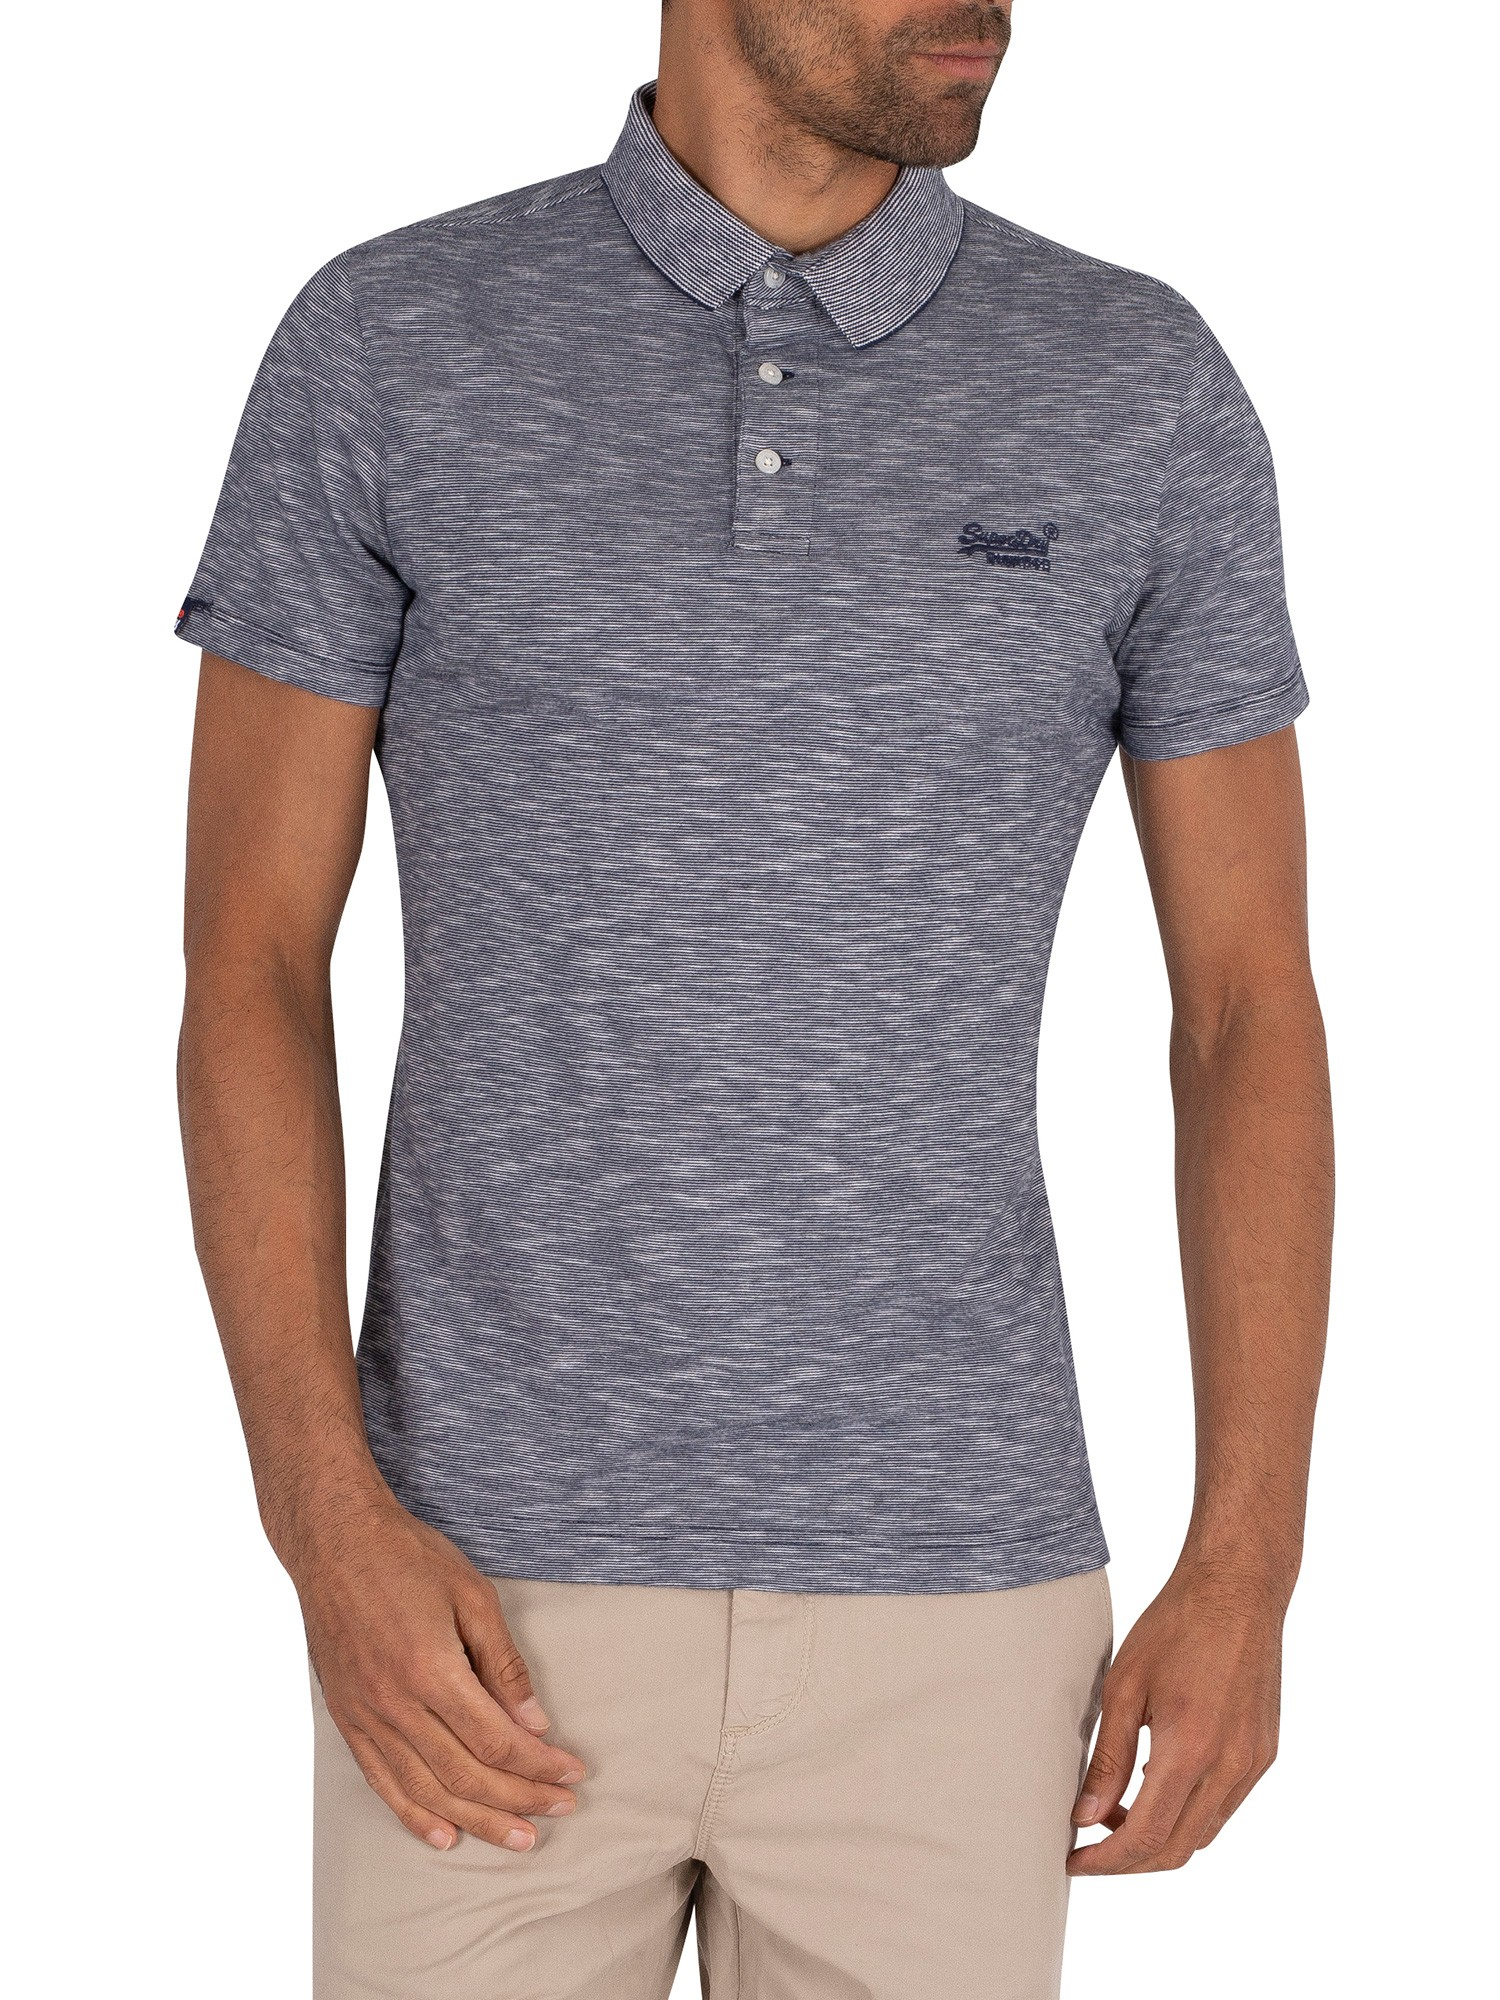 Superdry Orange Label Jersey Polo Shirt - Navy Feeder